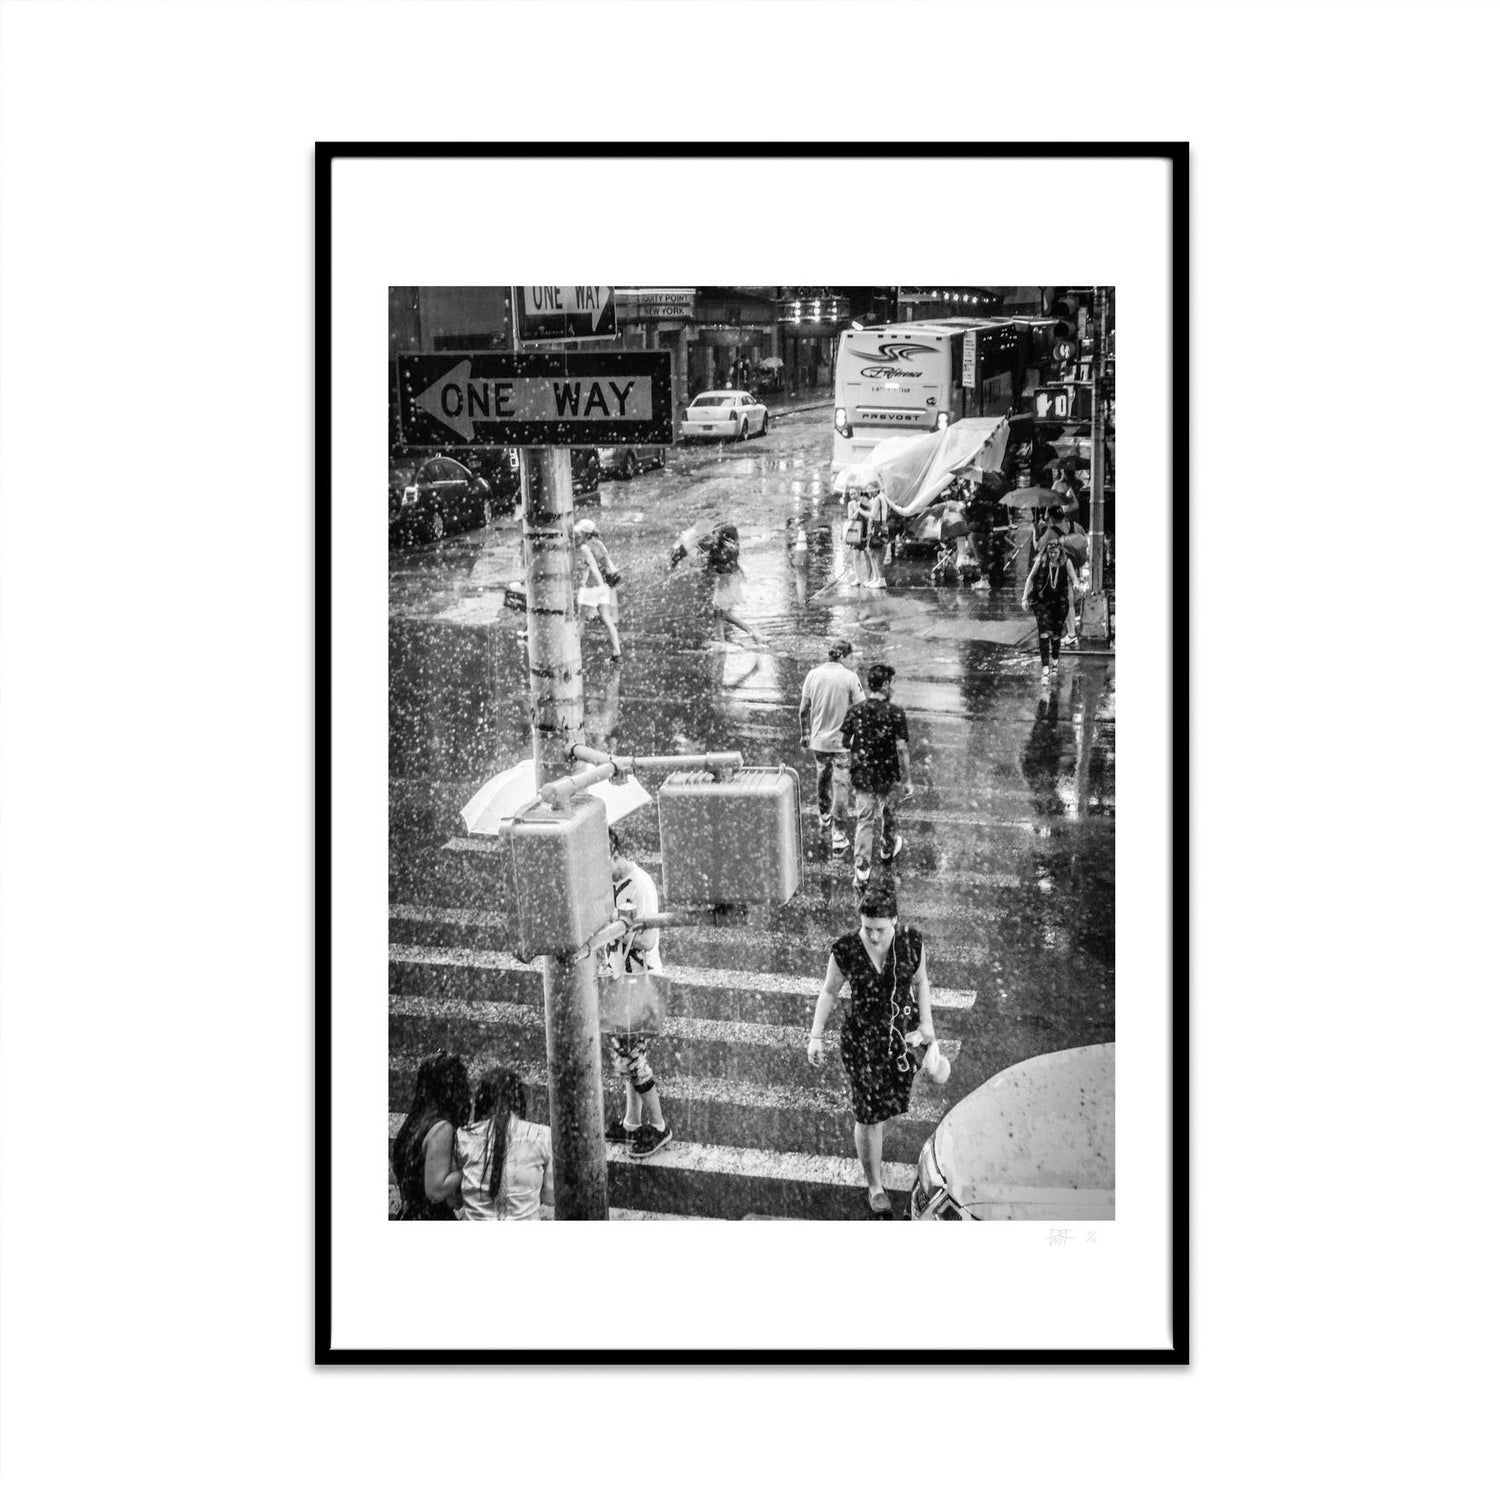 A black and white photography fine art print of a New York Street with various people crossing the road while it is raining. shot taken by Phil at what Phil sees.